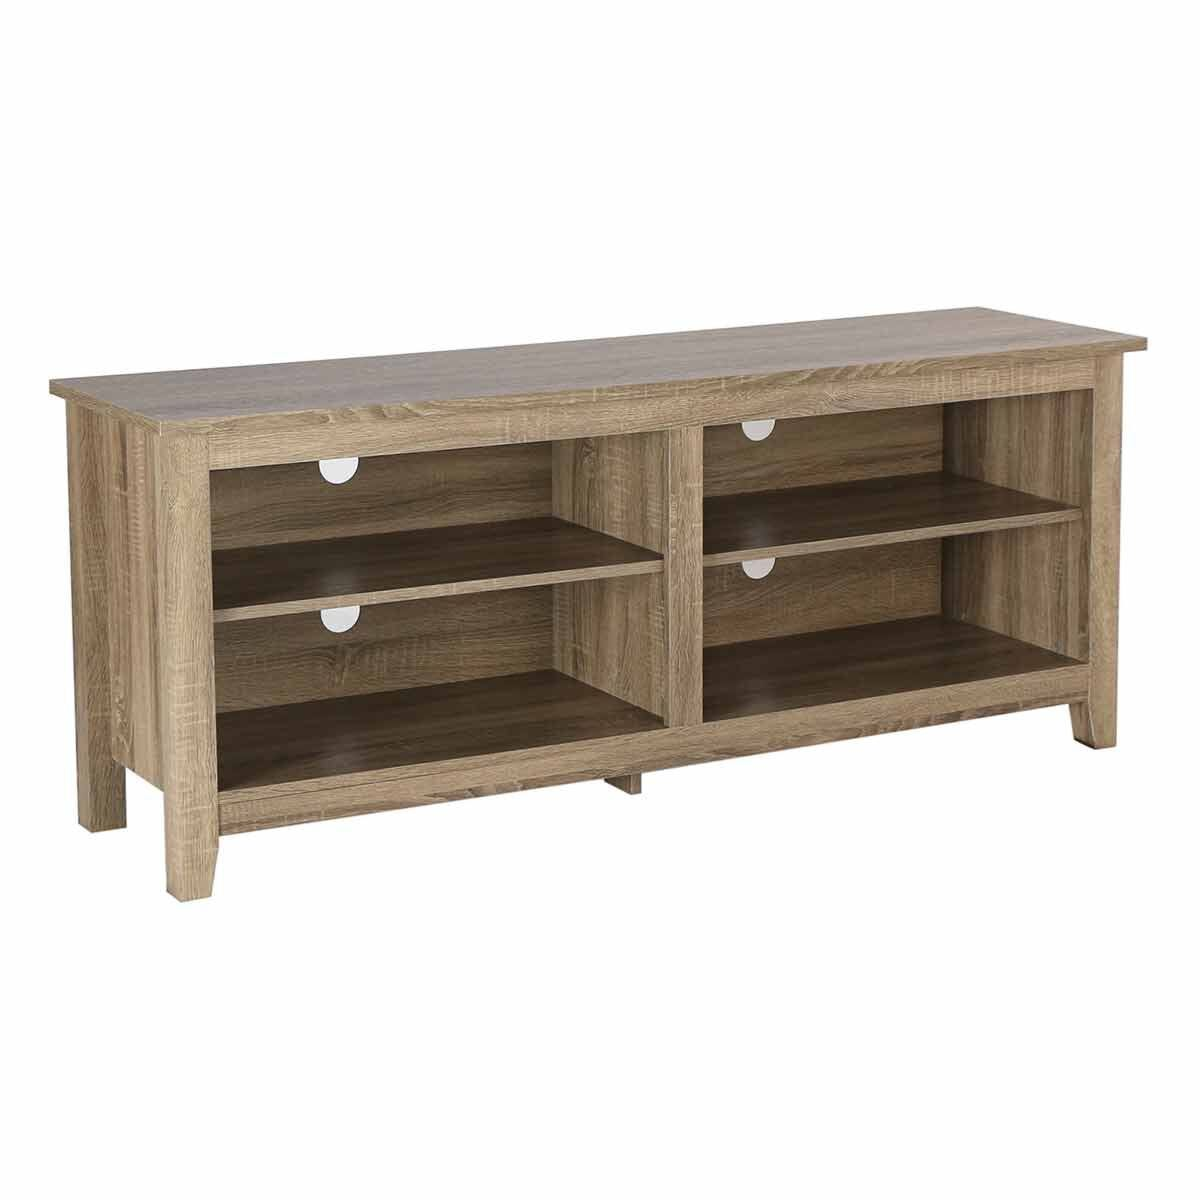 Cosenza Rustic Wood TV Stand